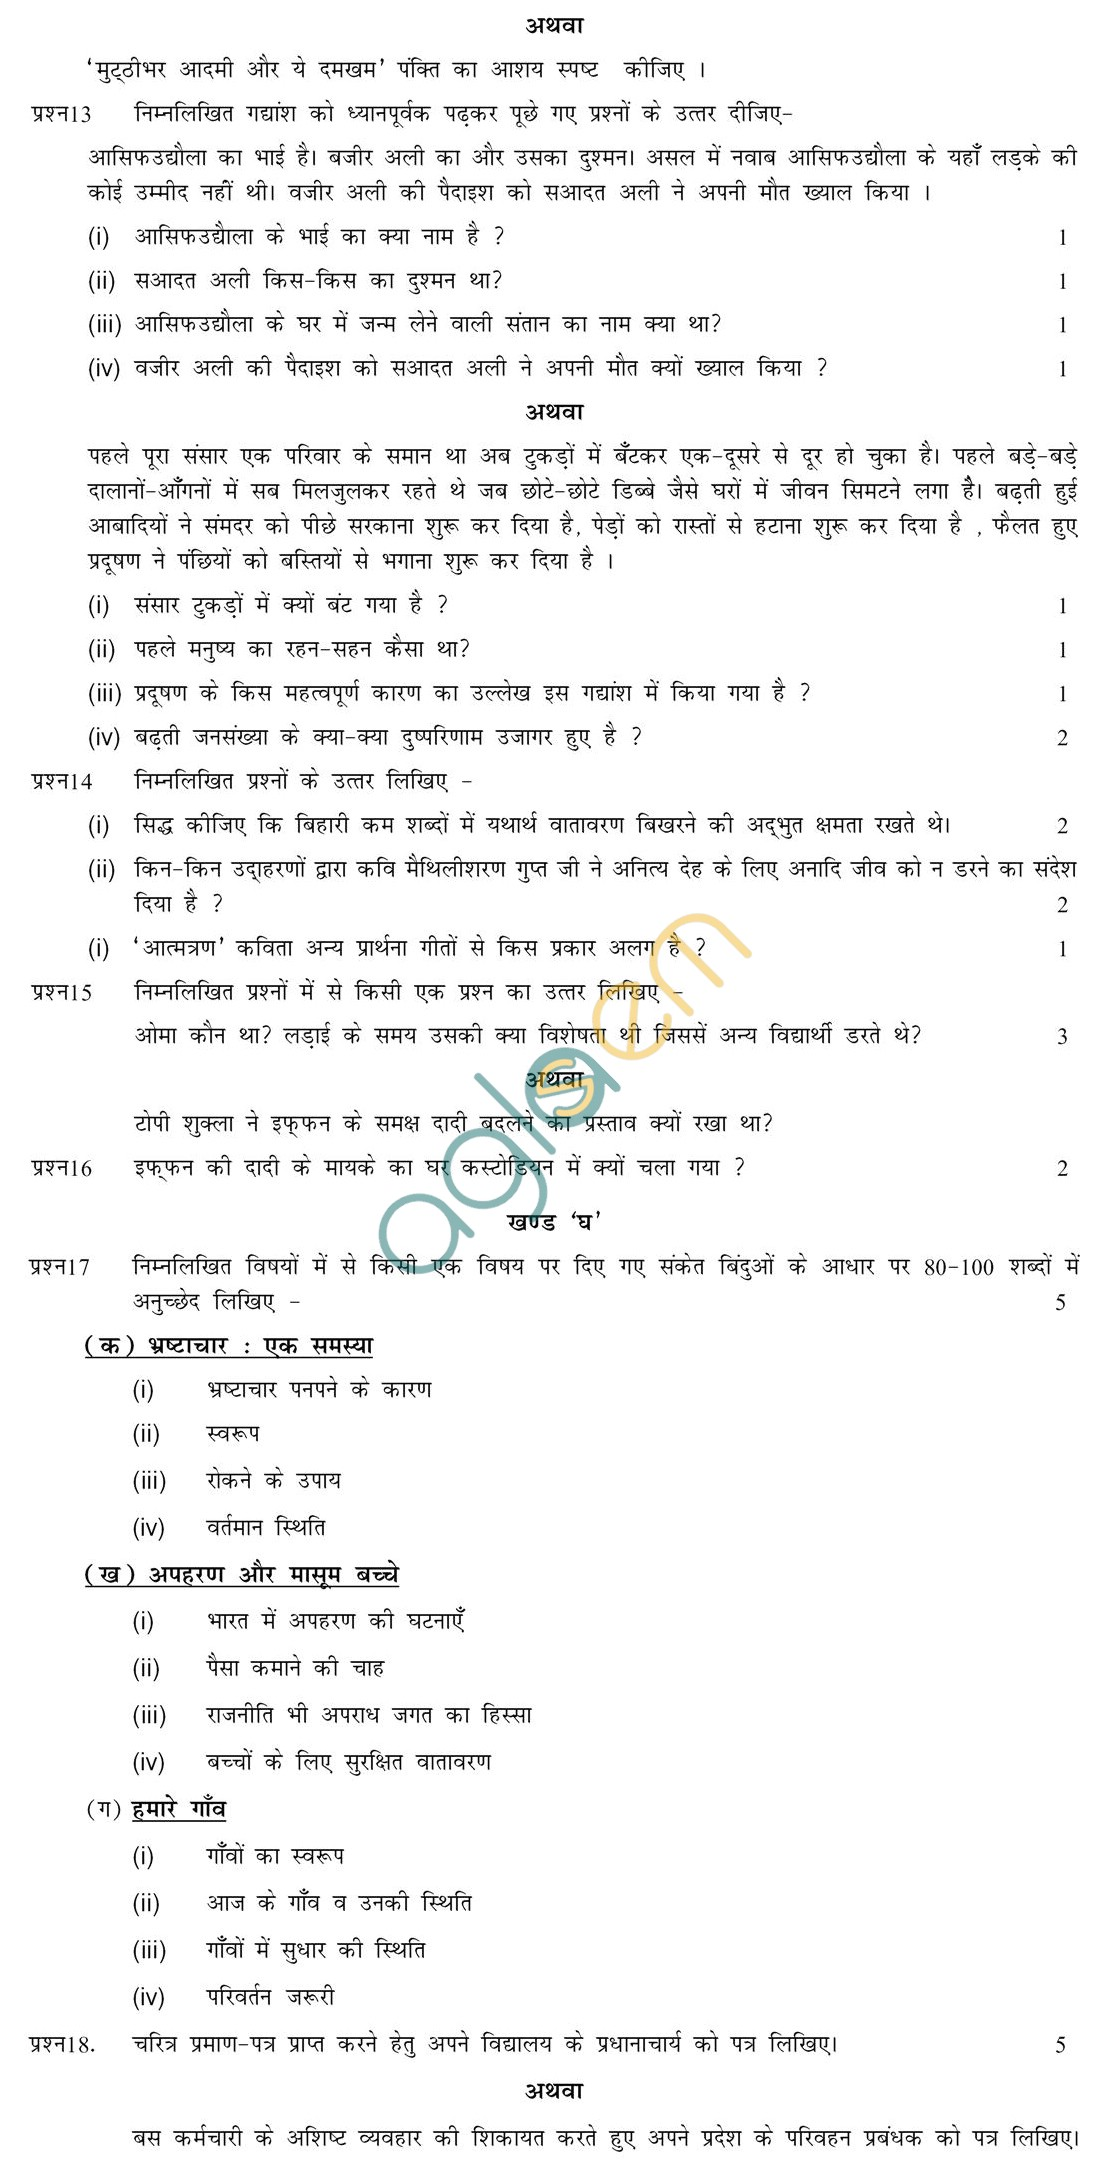 science papers for class 10 sa2 Download 2014 cbse science question papers for class 10 board examination in pdf format cbse previous year question papers give students an opportunity to get.